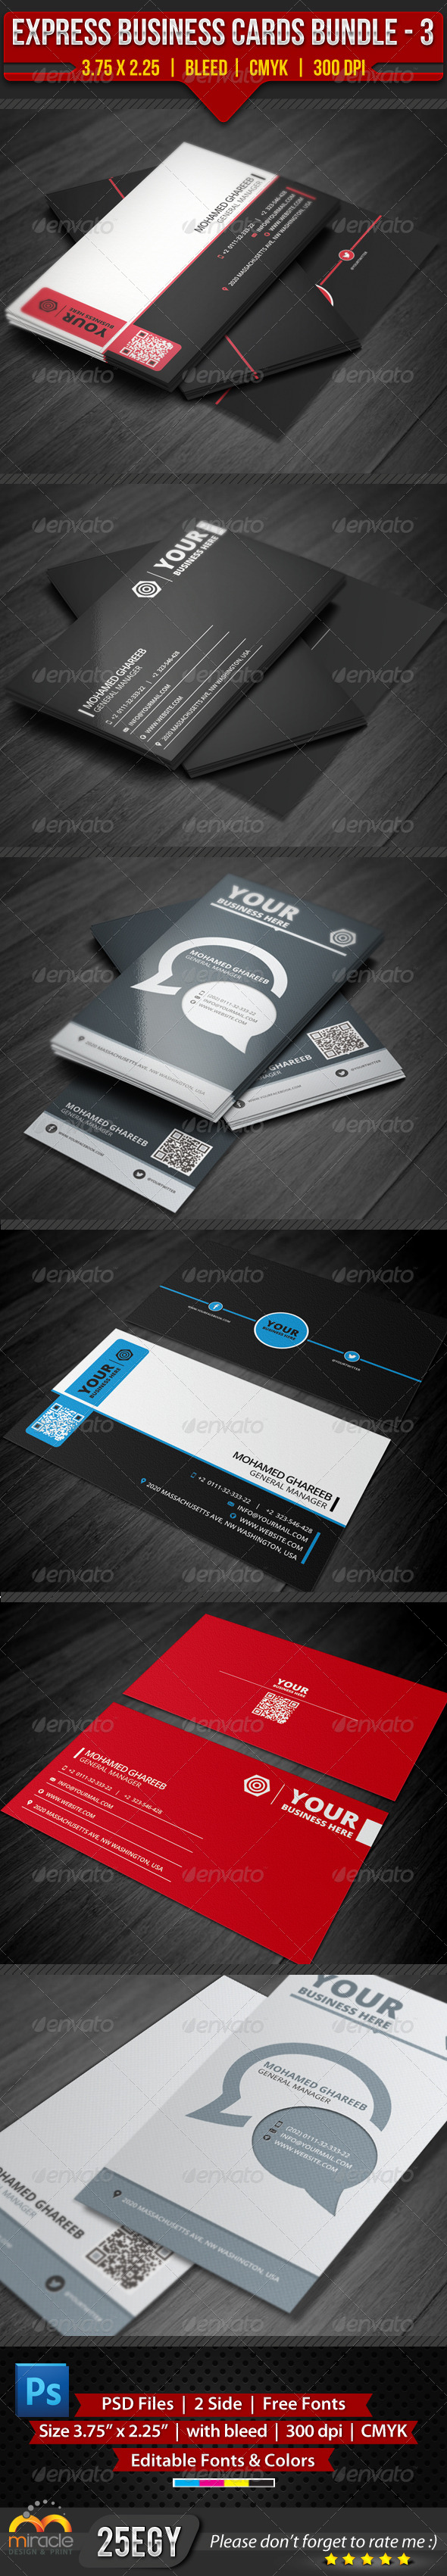 GraphicRiver Express Business Cards Bundle #3 4357040